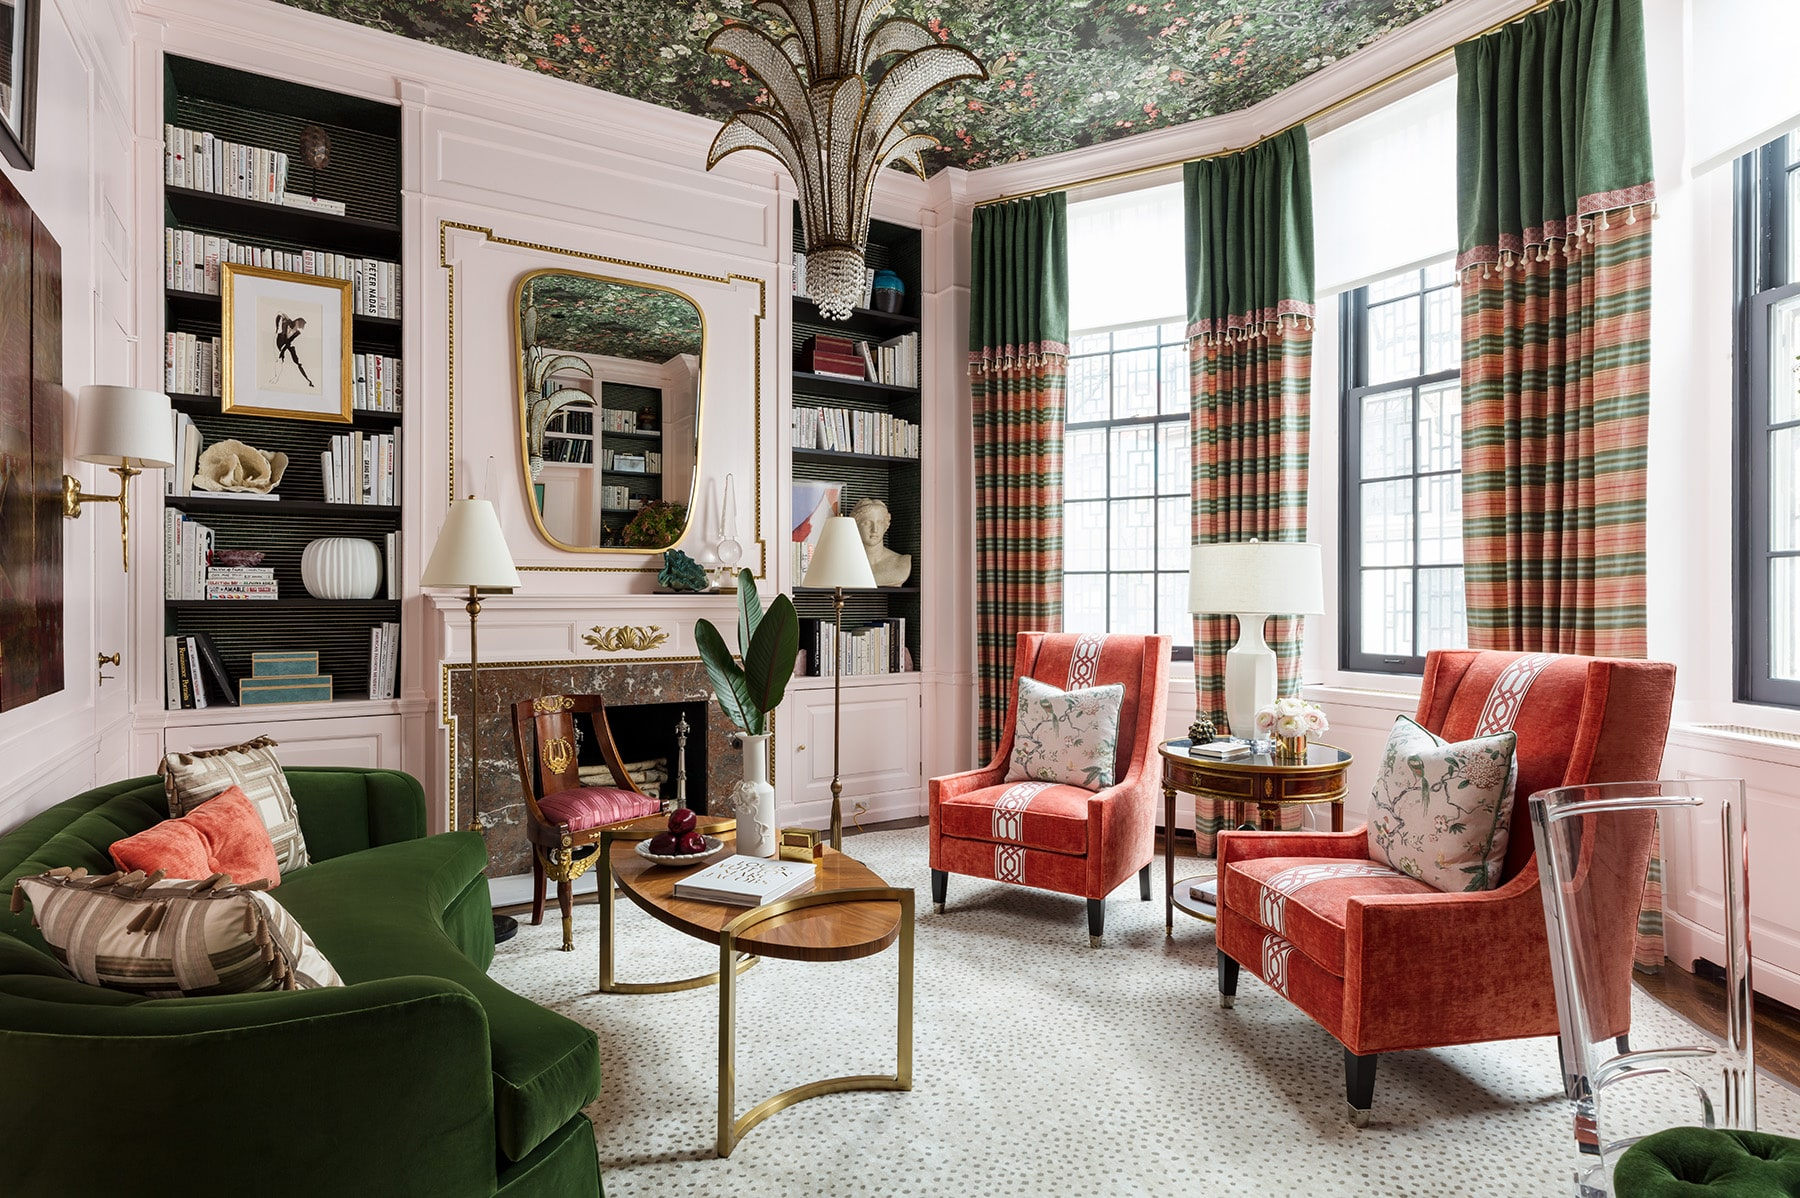 Top Interior Designers You Should Follow on Instagram elizabeth krueger House Tour: Elizabeth Krueger Chicago Apartment Top Interior Designers You Should Follow on Instagram4 1 elizabeth krueger House Tour: Elizabeth Krueger Chicago Apartment Top Interior Designers You Should Follow on Instagram4 1